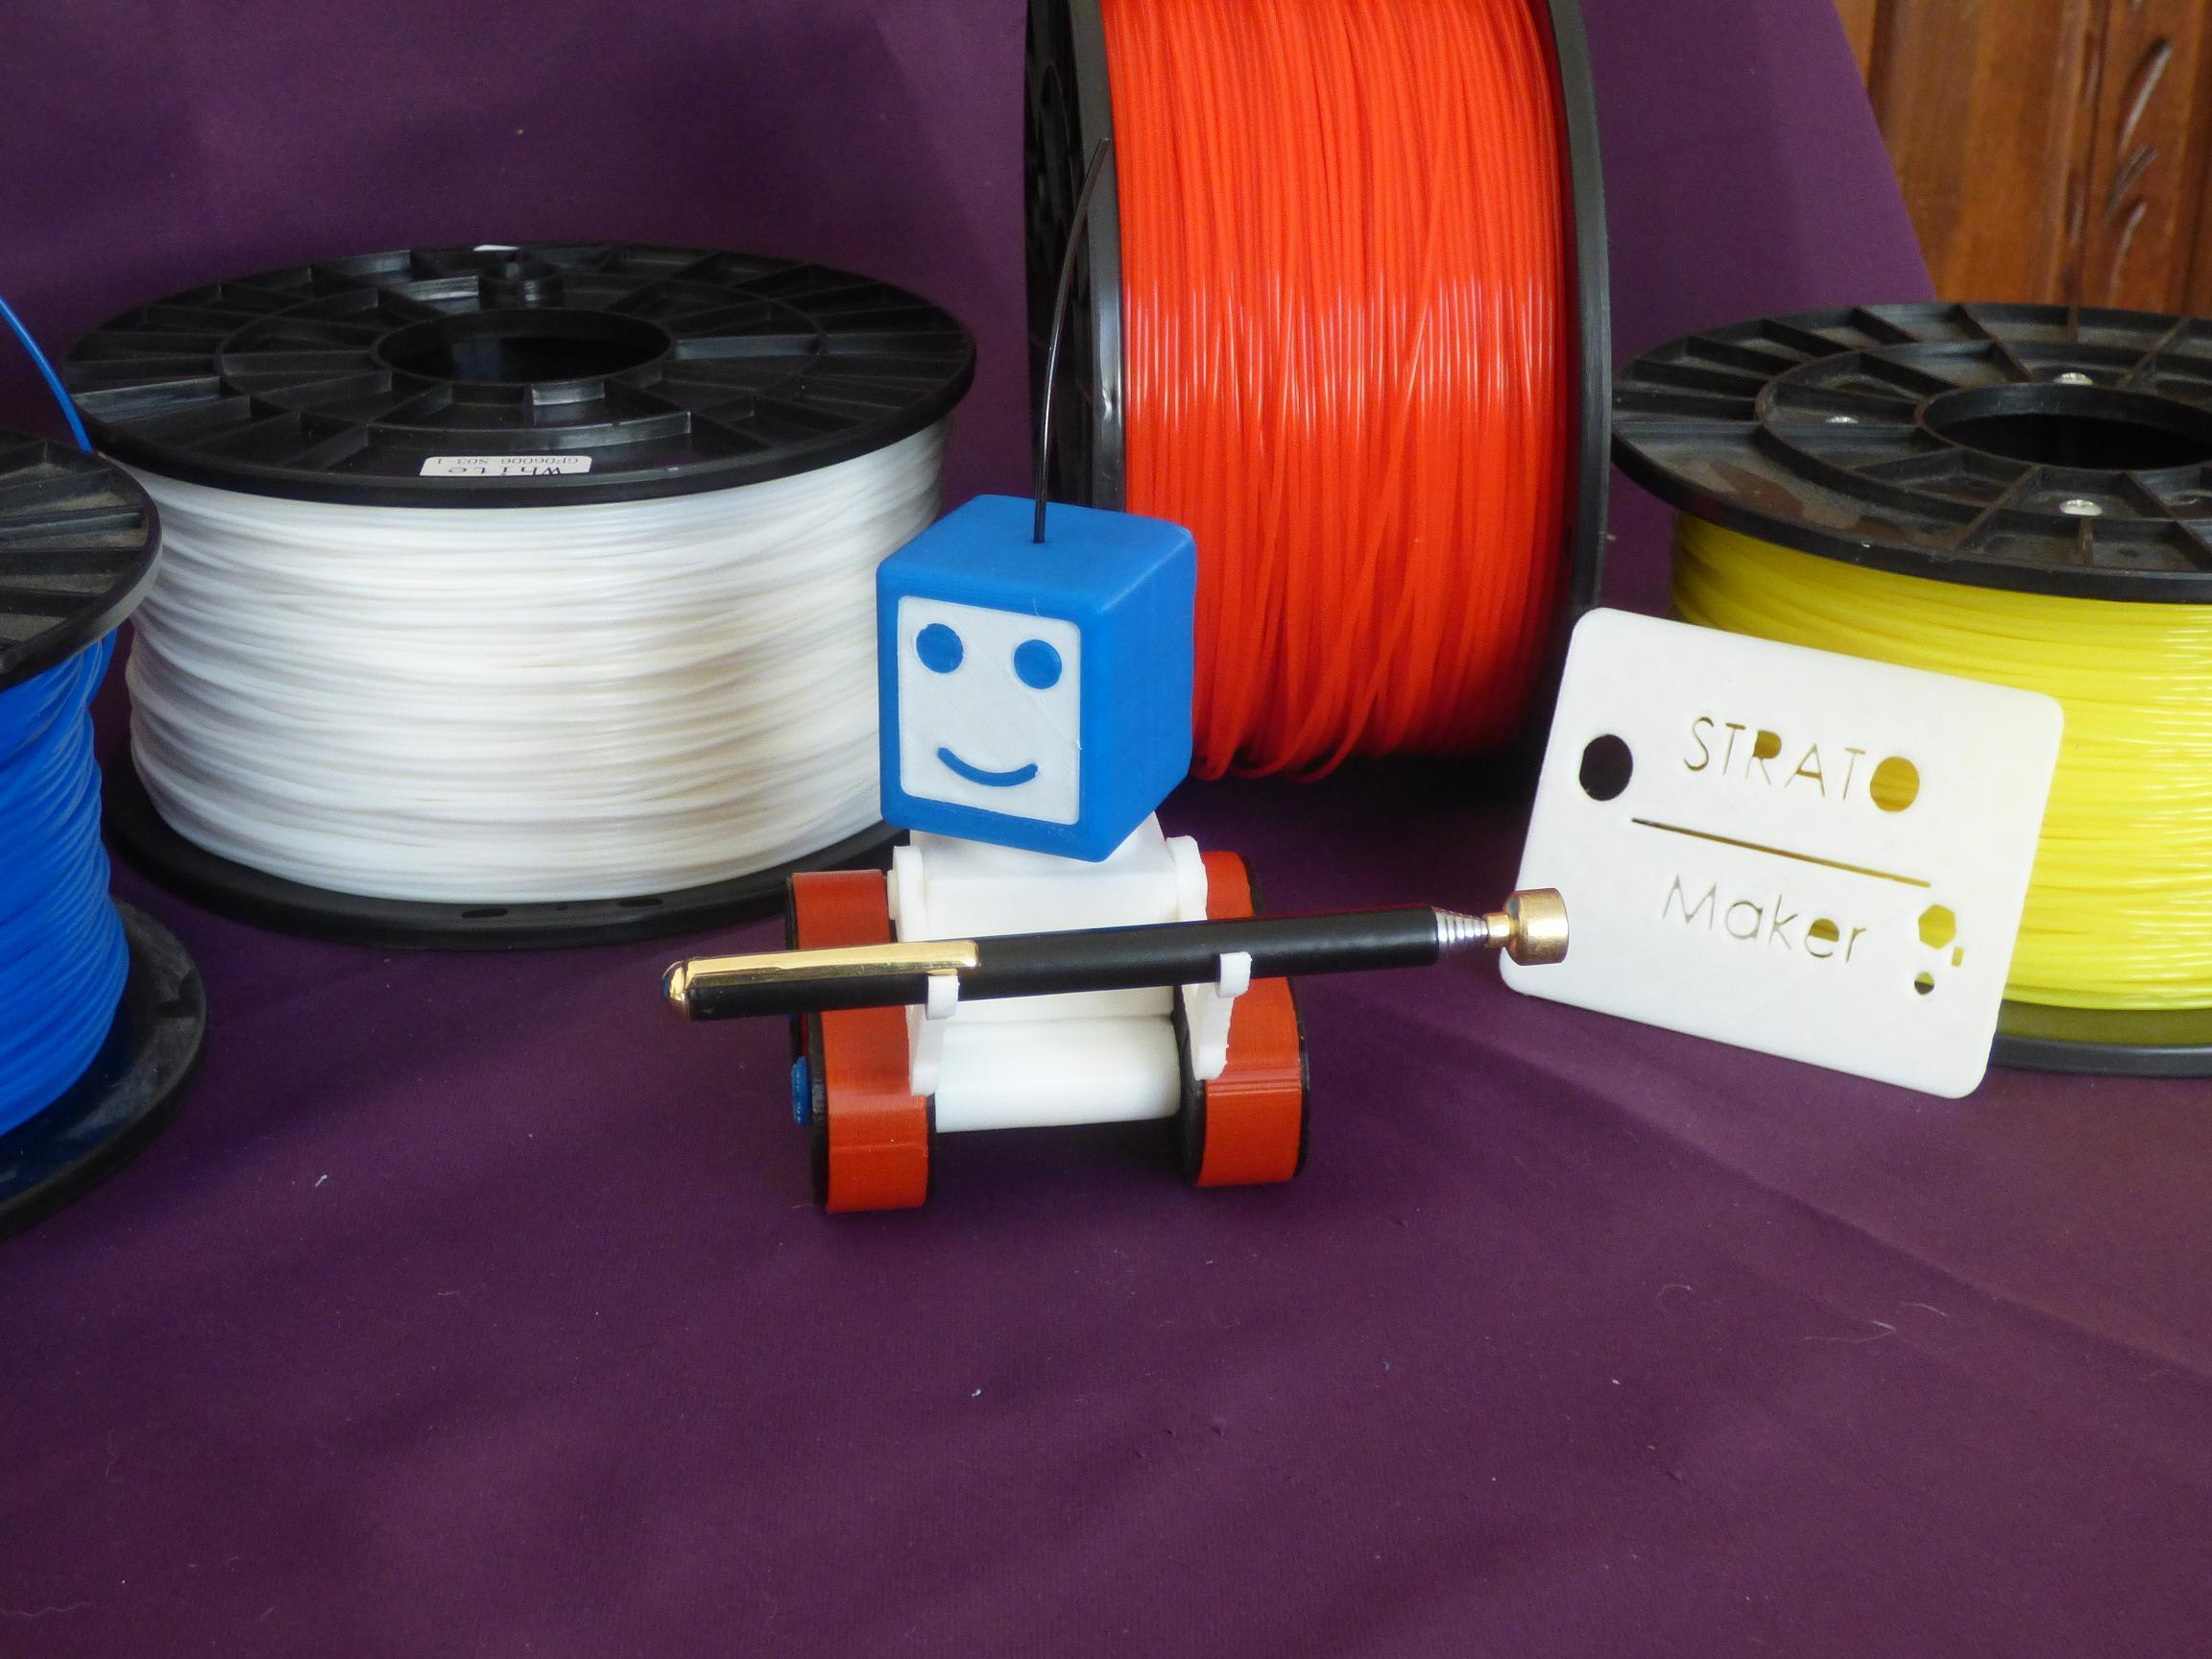 PH2.jpg Download free STL file STRATO THE ROBOT • 3D printer object, plume66